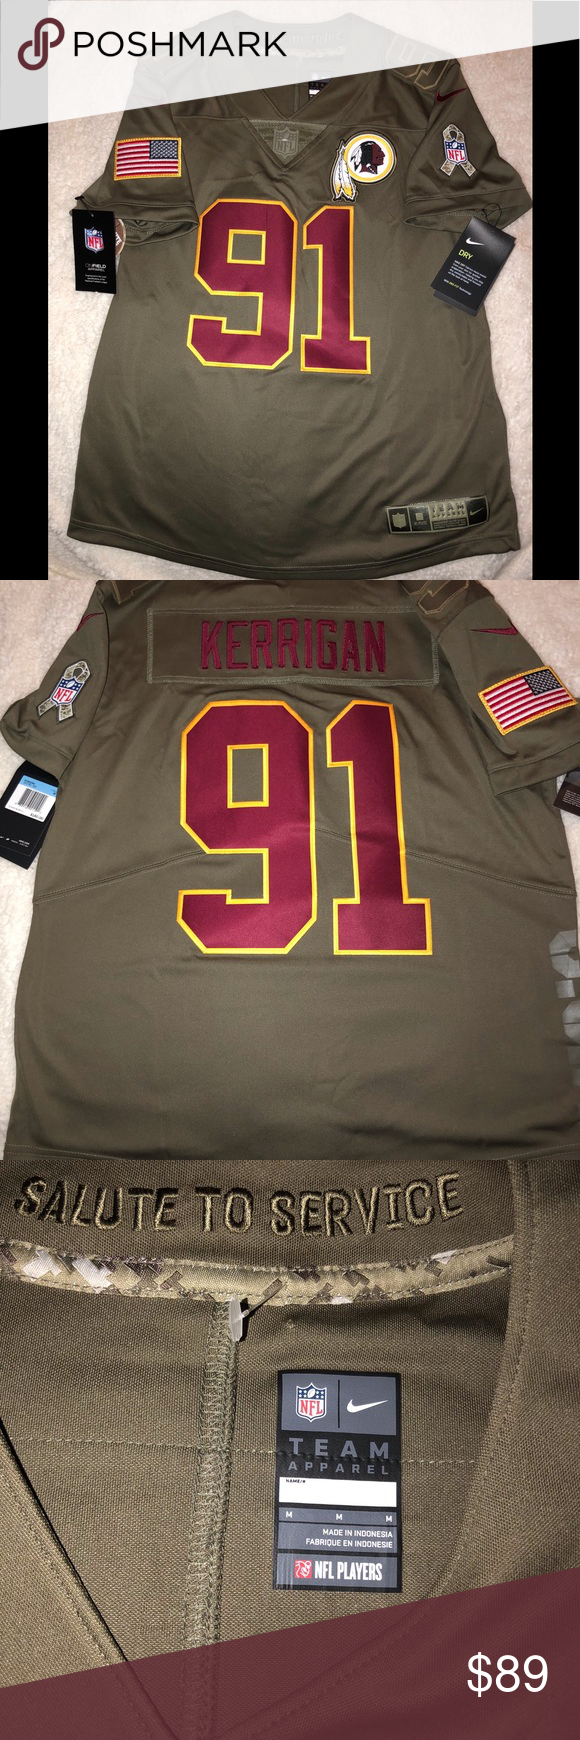 new styles 10469 426f3 Nike NFL REDSKINS AUTHENTIC IN GAME JERSEY Pro Bowl player ...